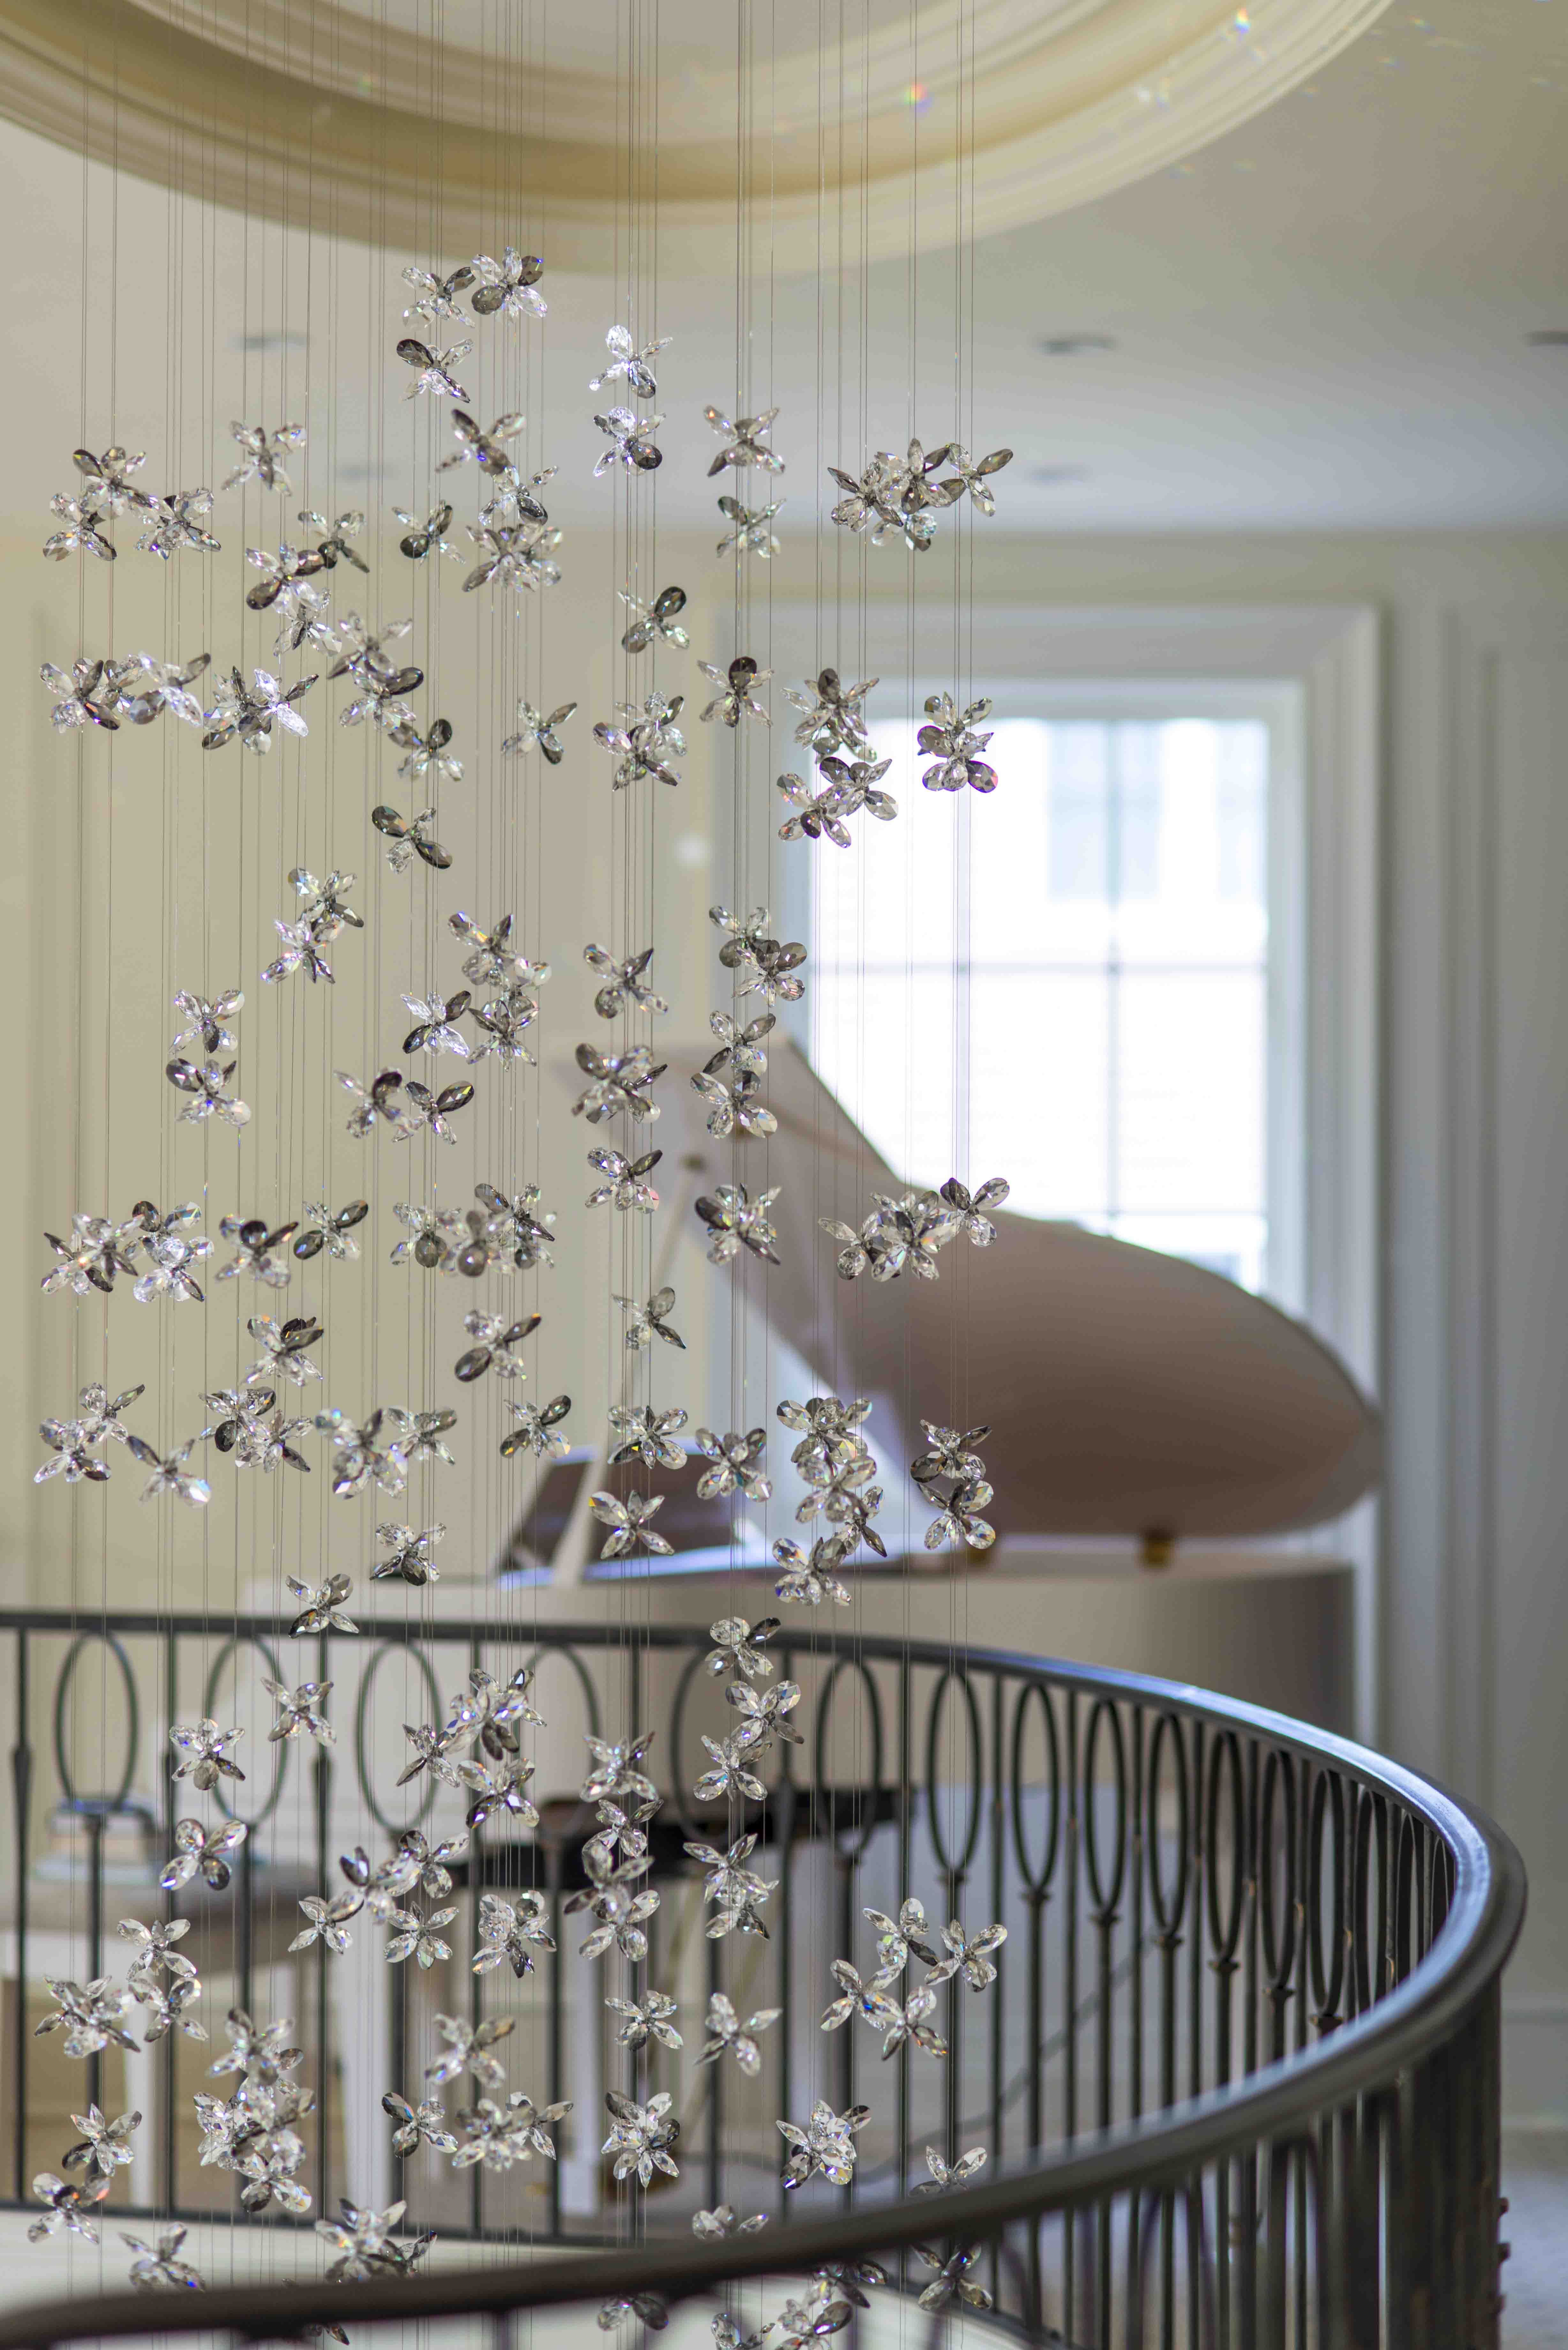 Windfall chandeliers the flower staircase the flower windfall chandeliers the flower staircase arubaitofo Choice Image